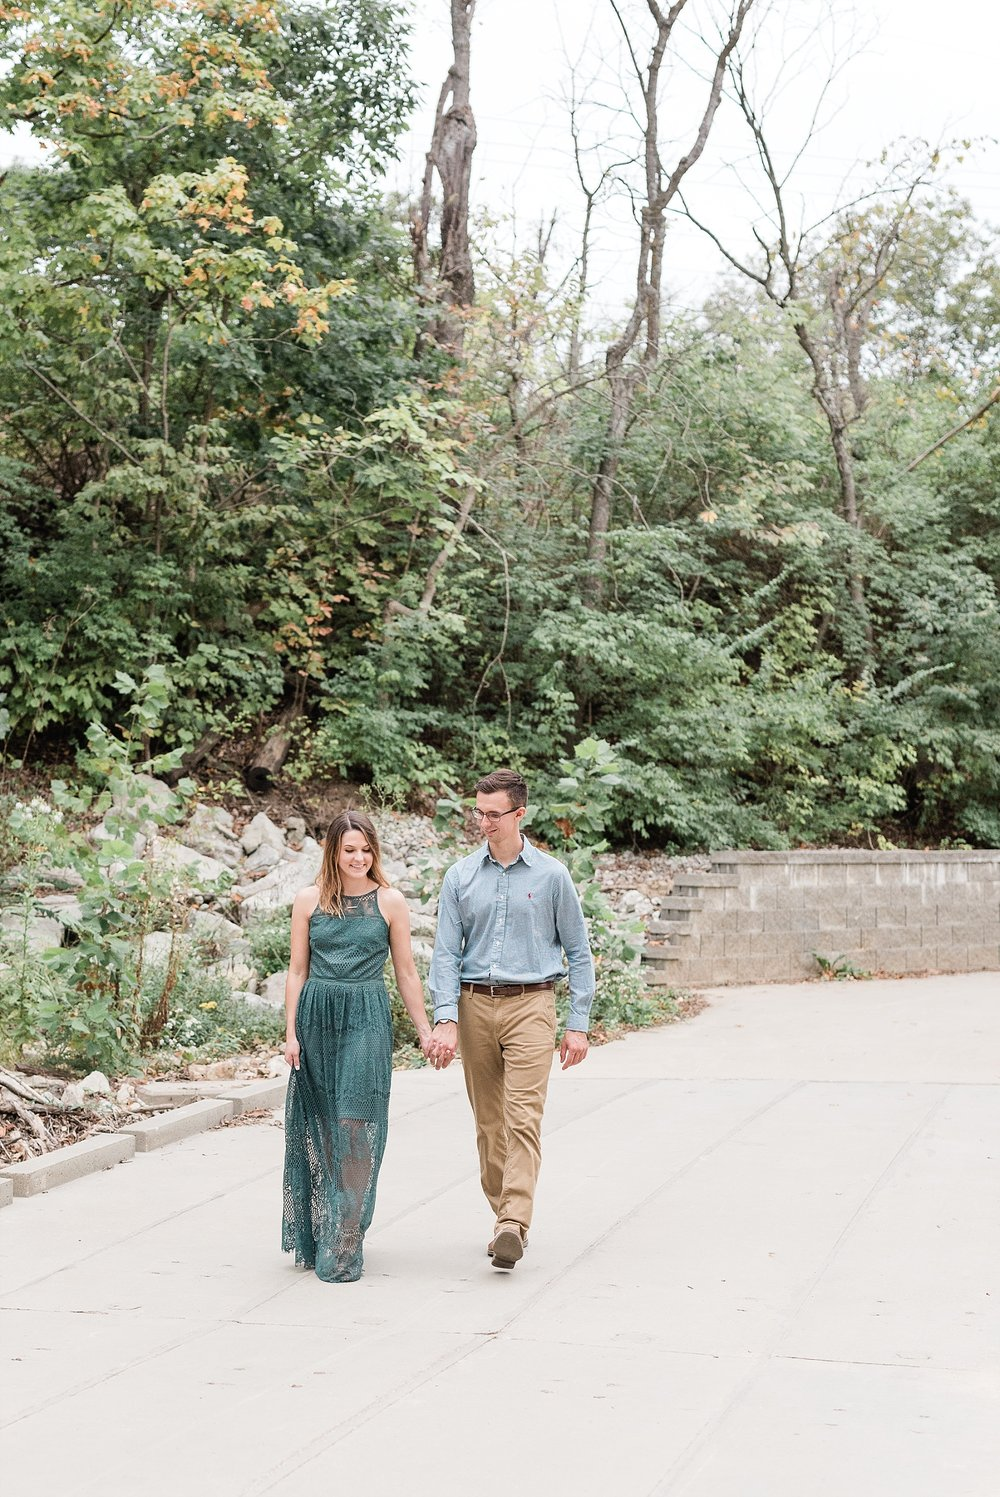 Autumn Engagement Session at Grindstone Nature Trail Columbia Missouri by Kelsi Kliethermes Photography_0006.jpg